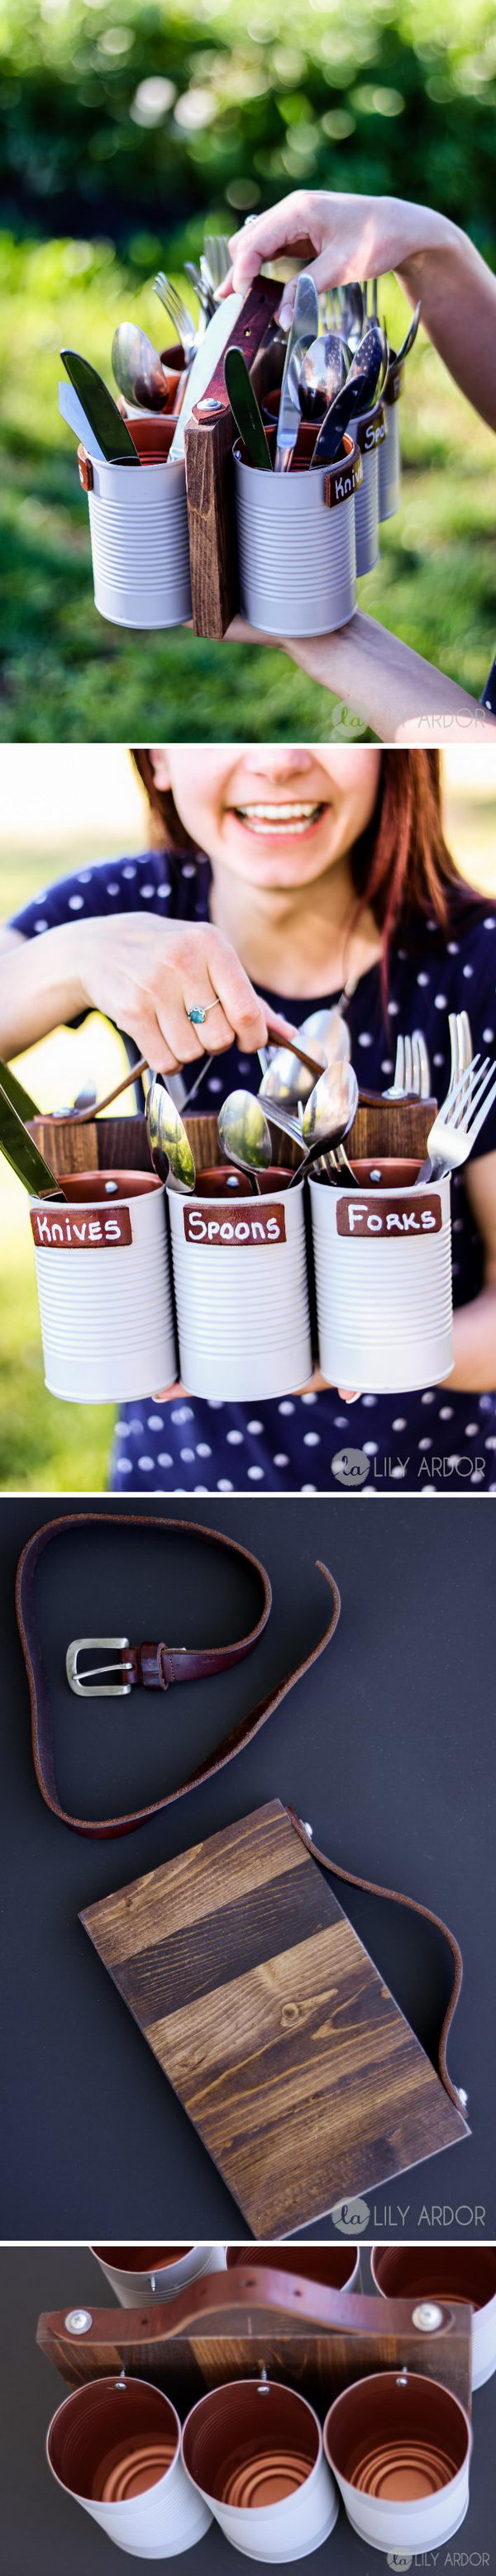 DIY Silverware Caddy Using Painted Cans.